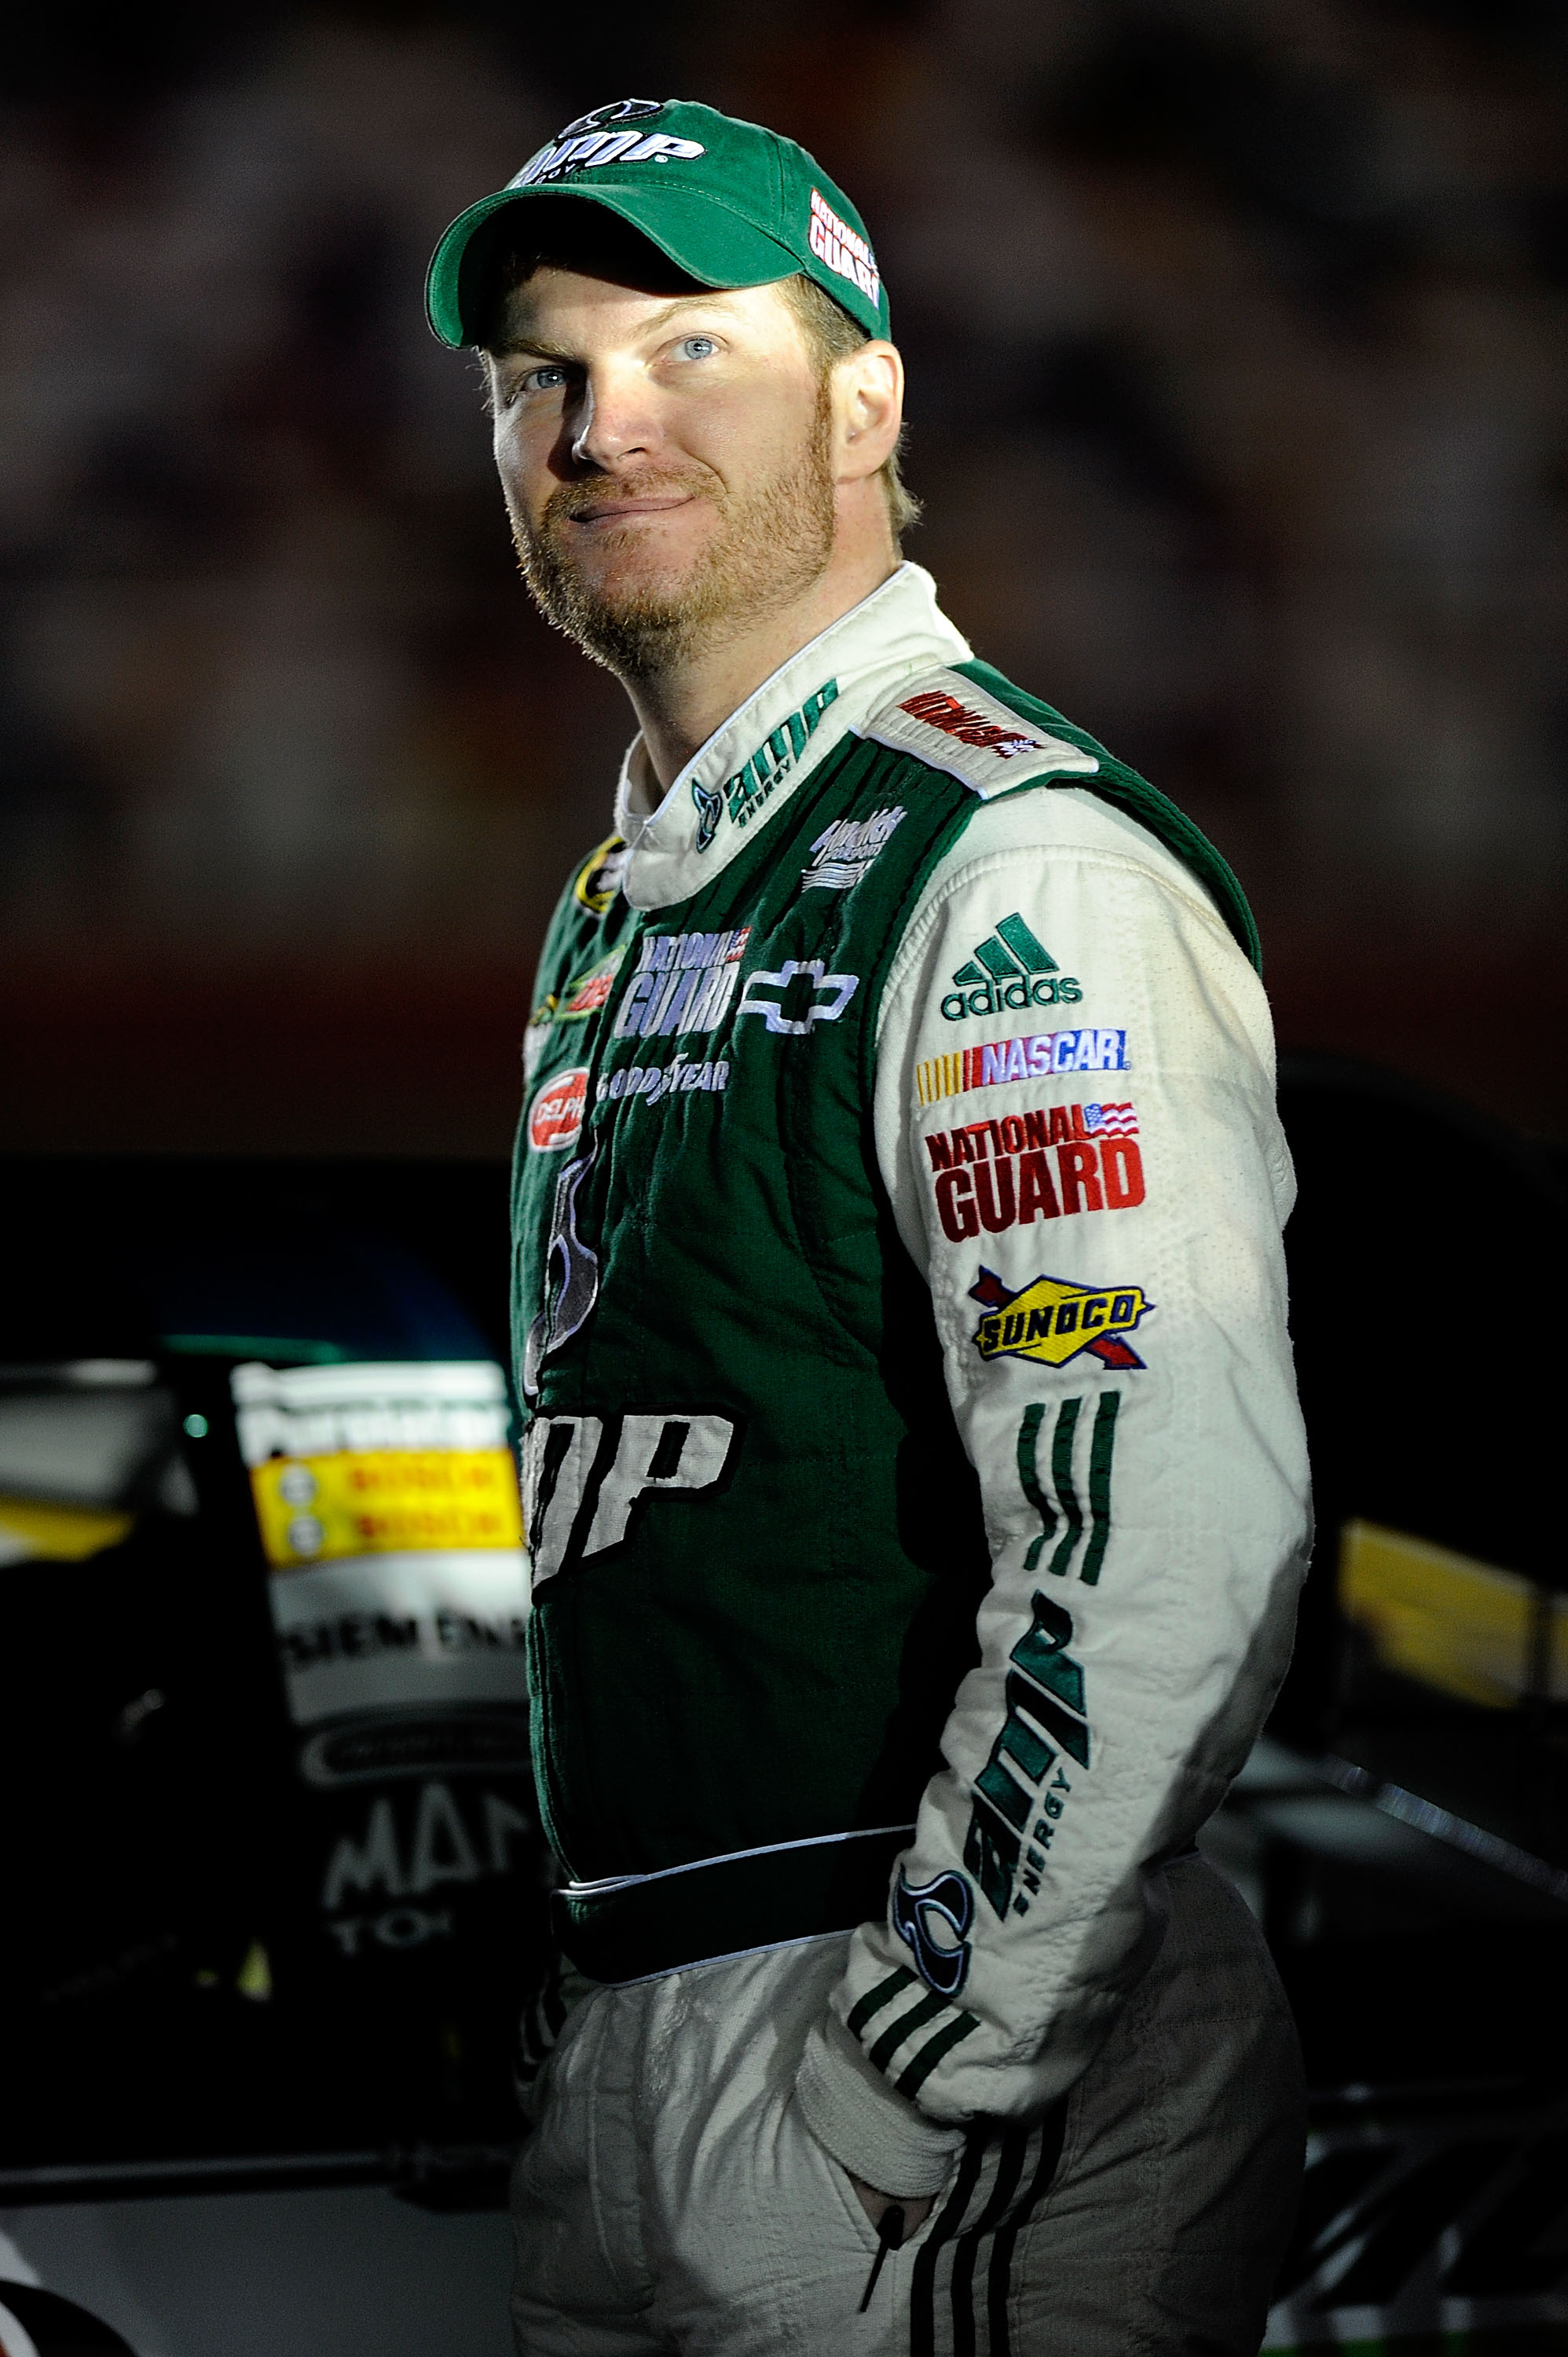 CONCORD, NC - OCTOBER 14:  Dale Earnhardt Jr., drivere of the #88 AMP Energy/Natgional Guard Chevrolet, stands on pit road during qualifying for the NASCAR Sprint Cup Series Bank of America 500 at Charlotte Motor Speedway on October 14, 2010 in Concord, N